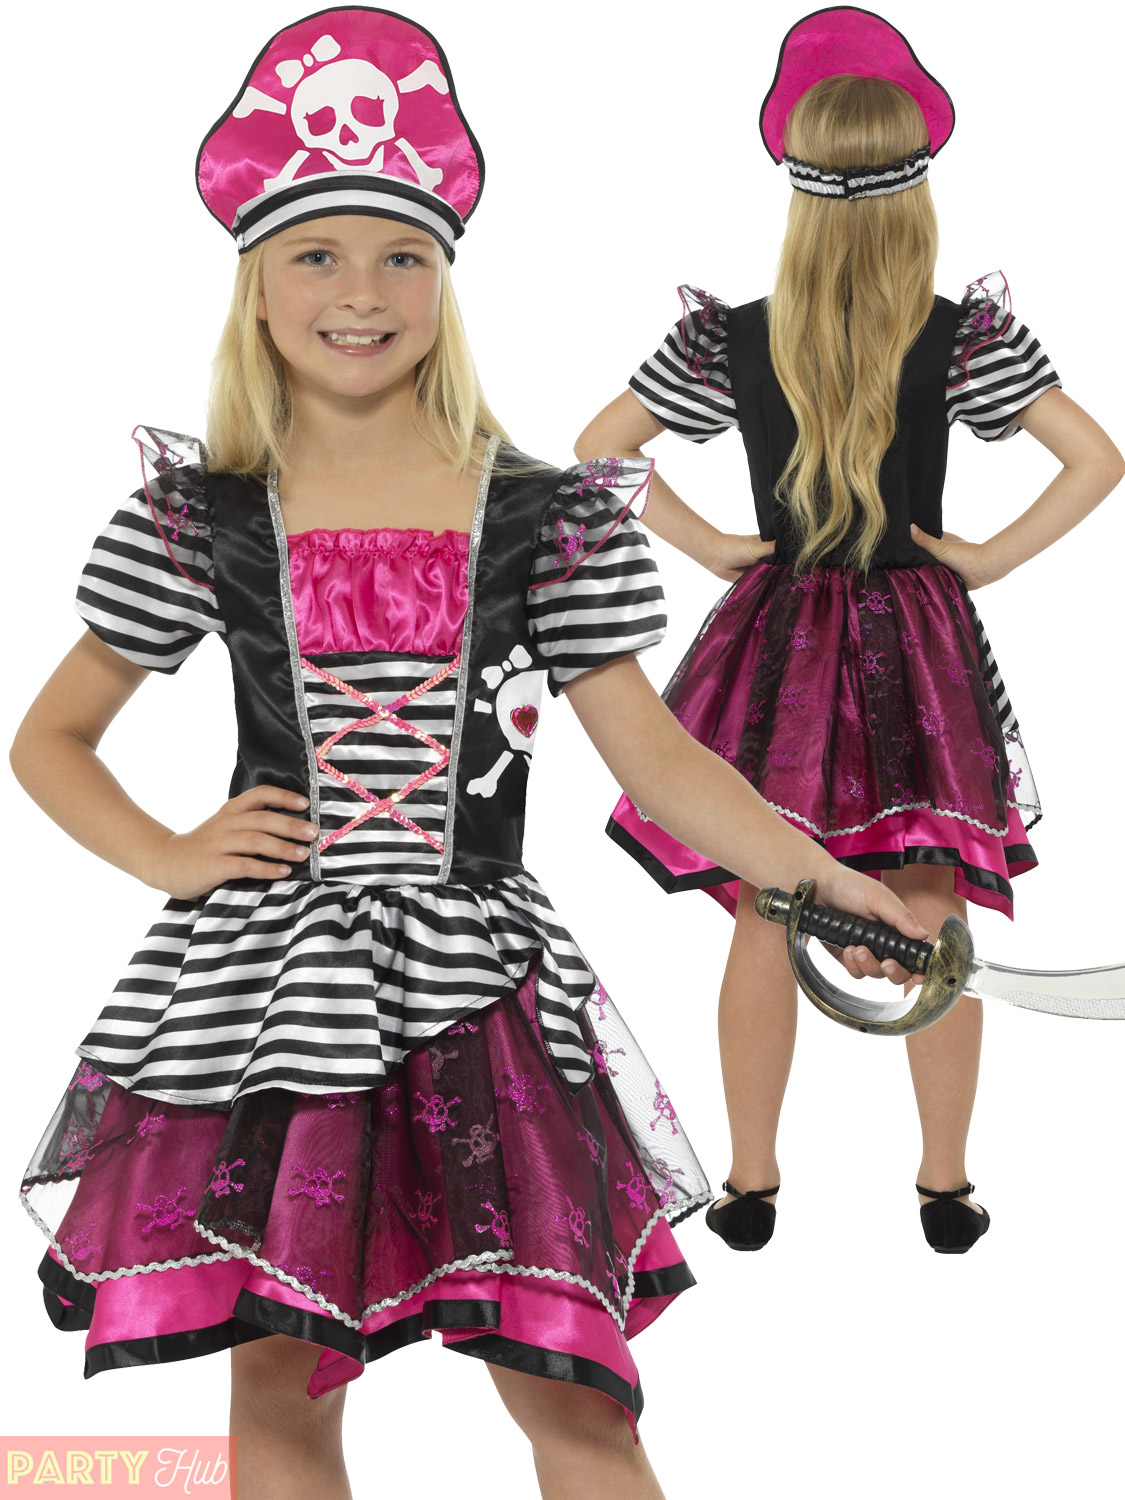 Girls Pink Pirate Fancy Dress Costume Buccaneer Caribbean Book Day Outfit